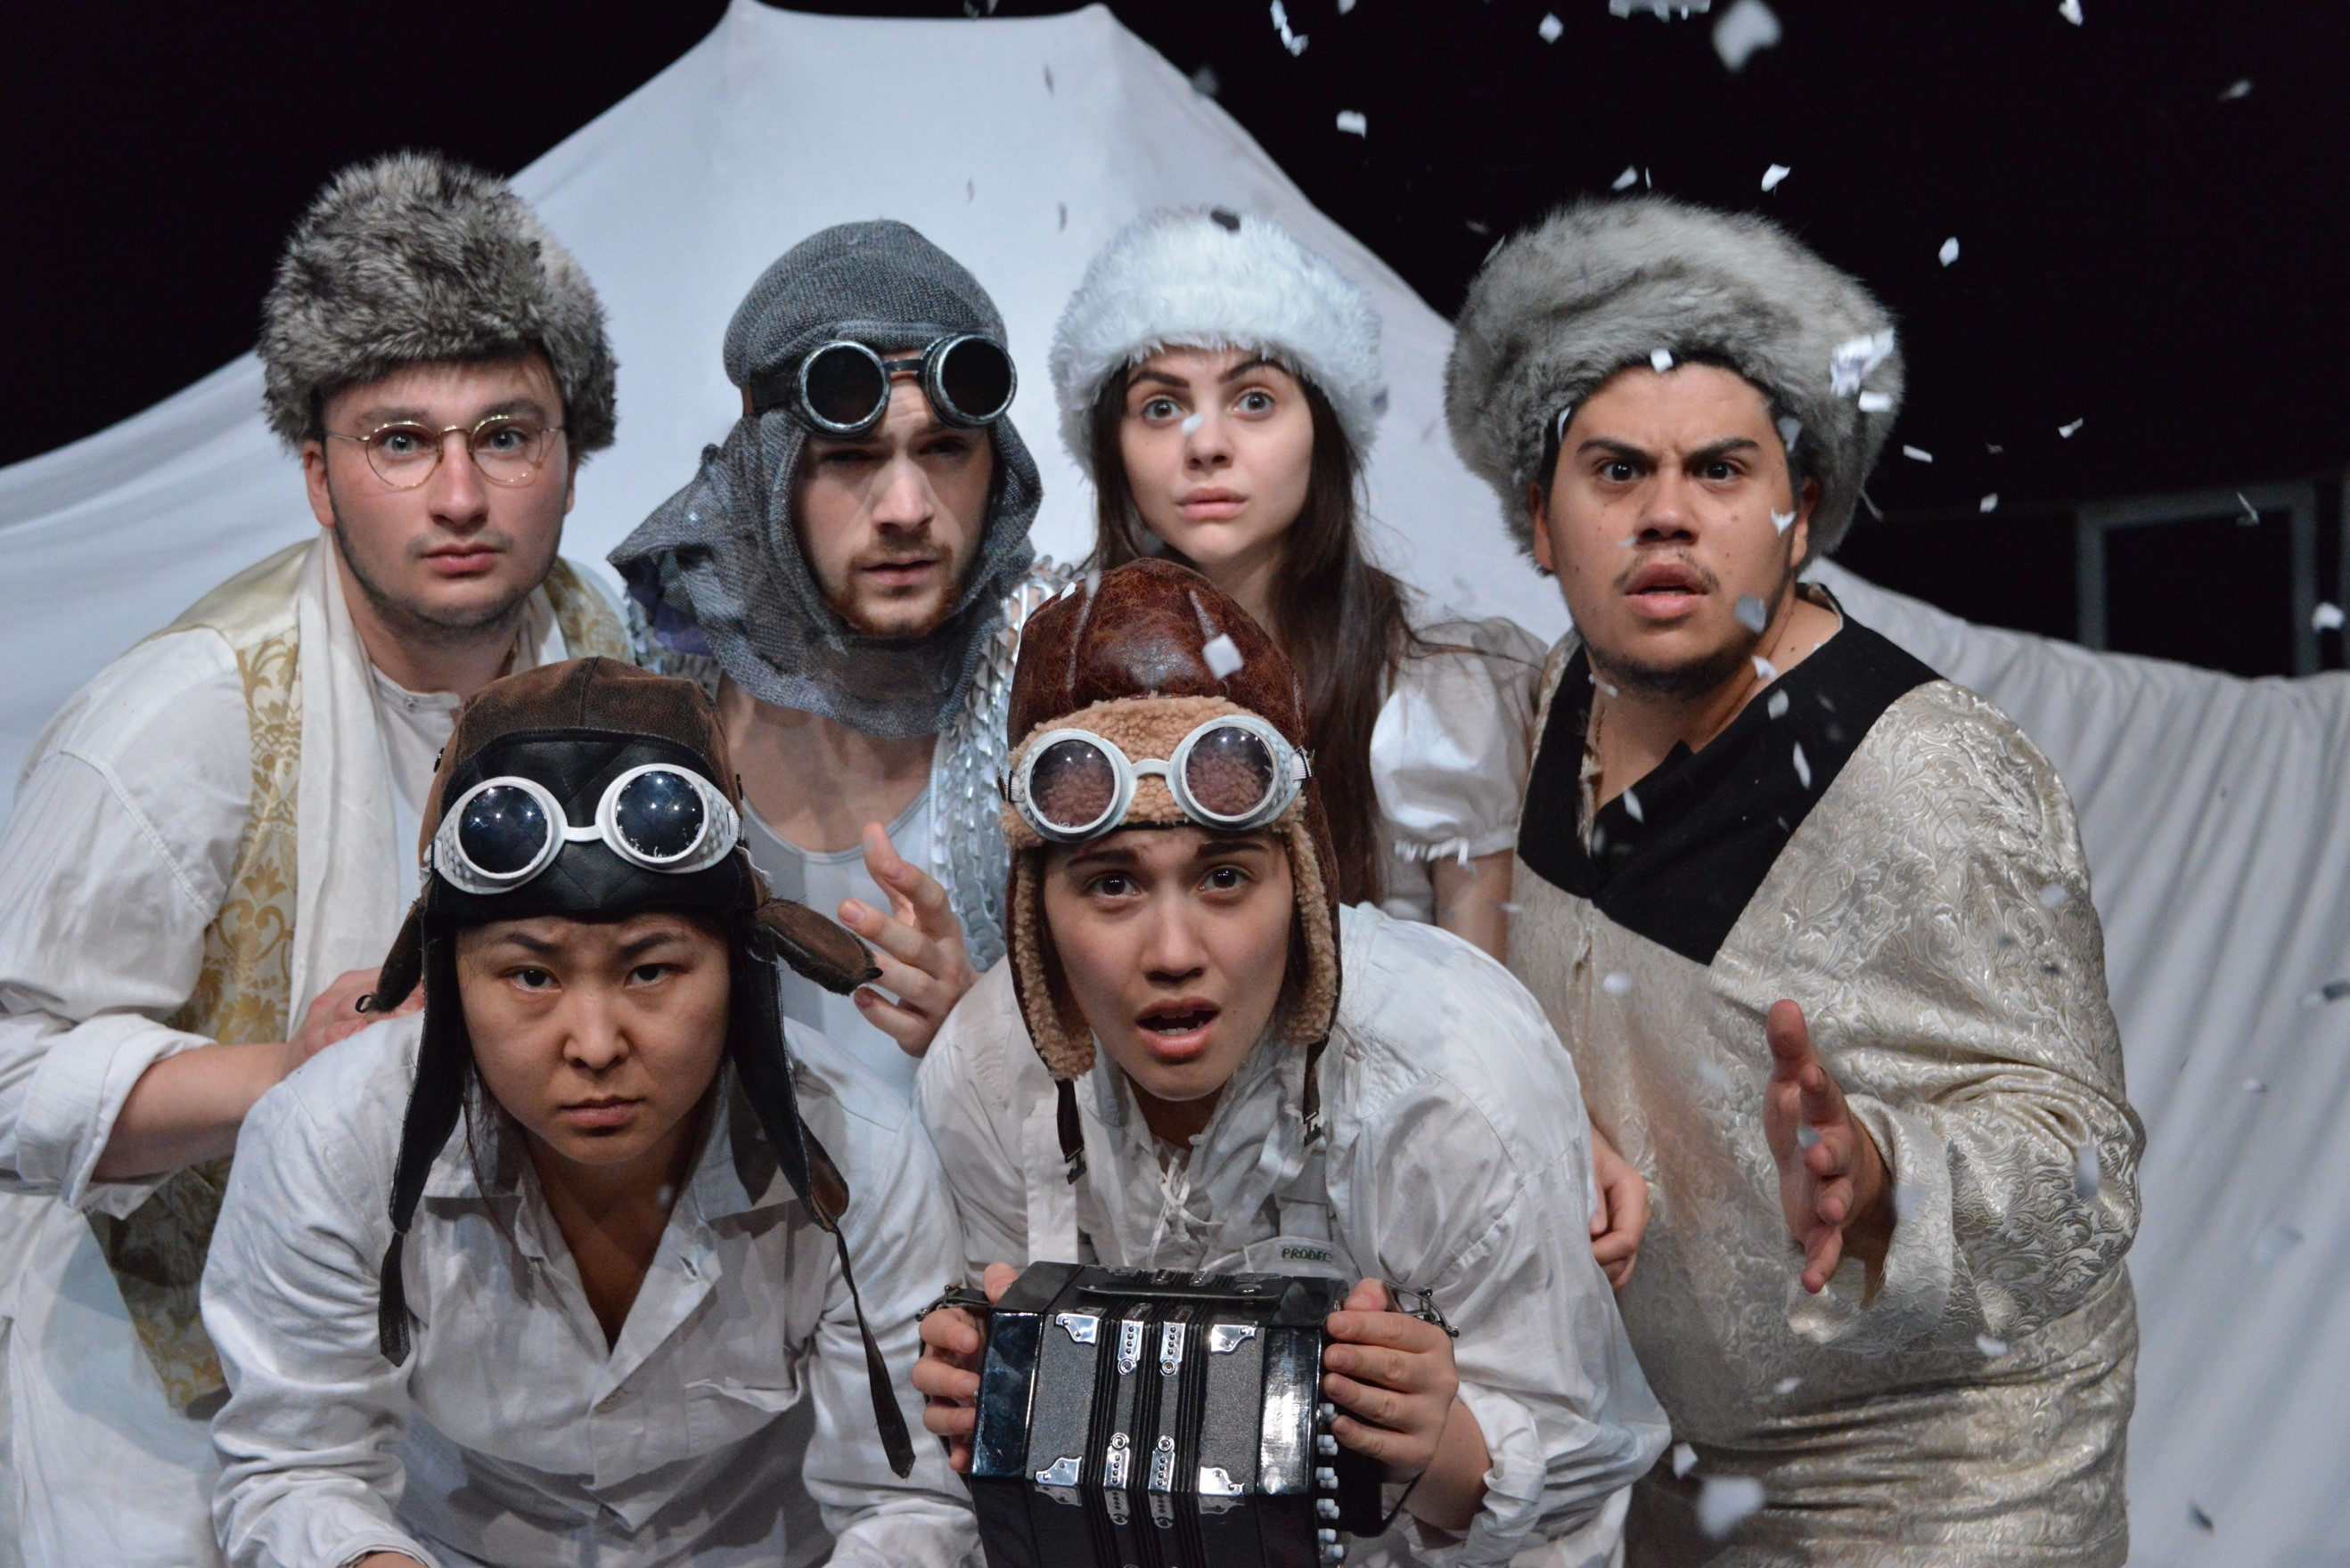 My Love Lies Frozen in the Ice -Dead Rabbits Theatre – PERFORMANCE